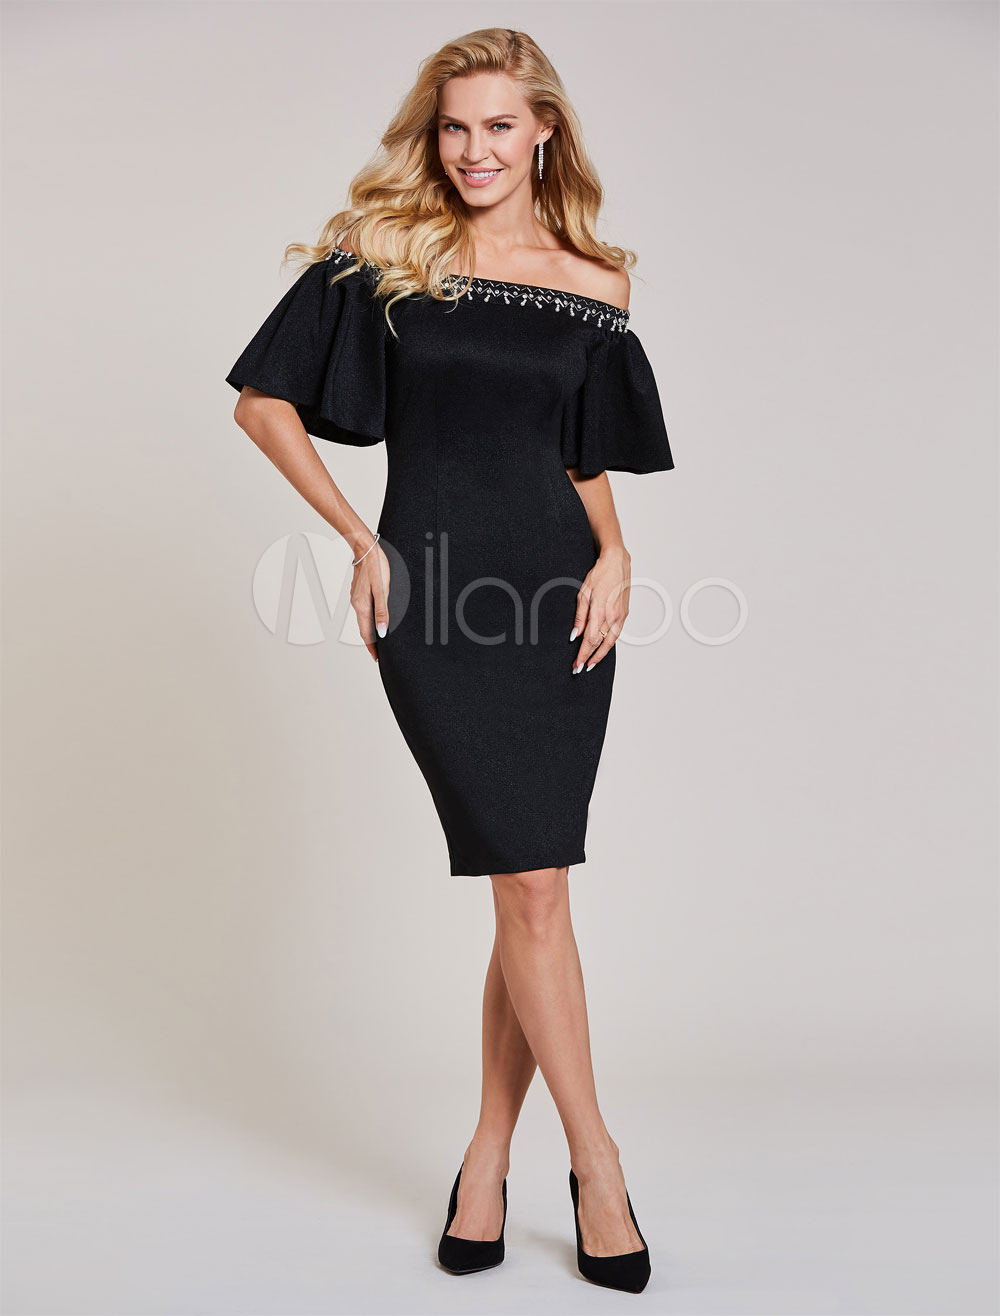 Buy Black Cocktail Dresses Sheath Short Off The Shoulder Half Sleeve Knee Length Party Dress for $74.79 in Milanoo store